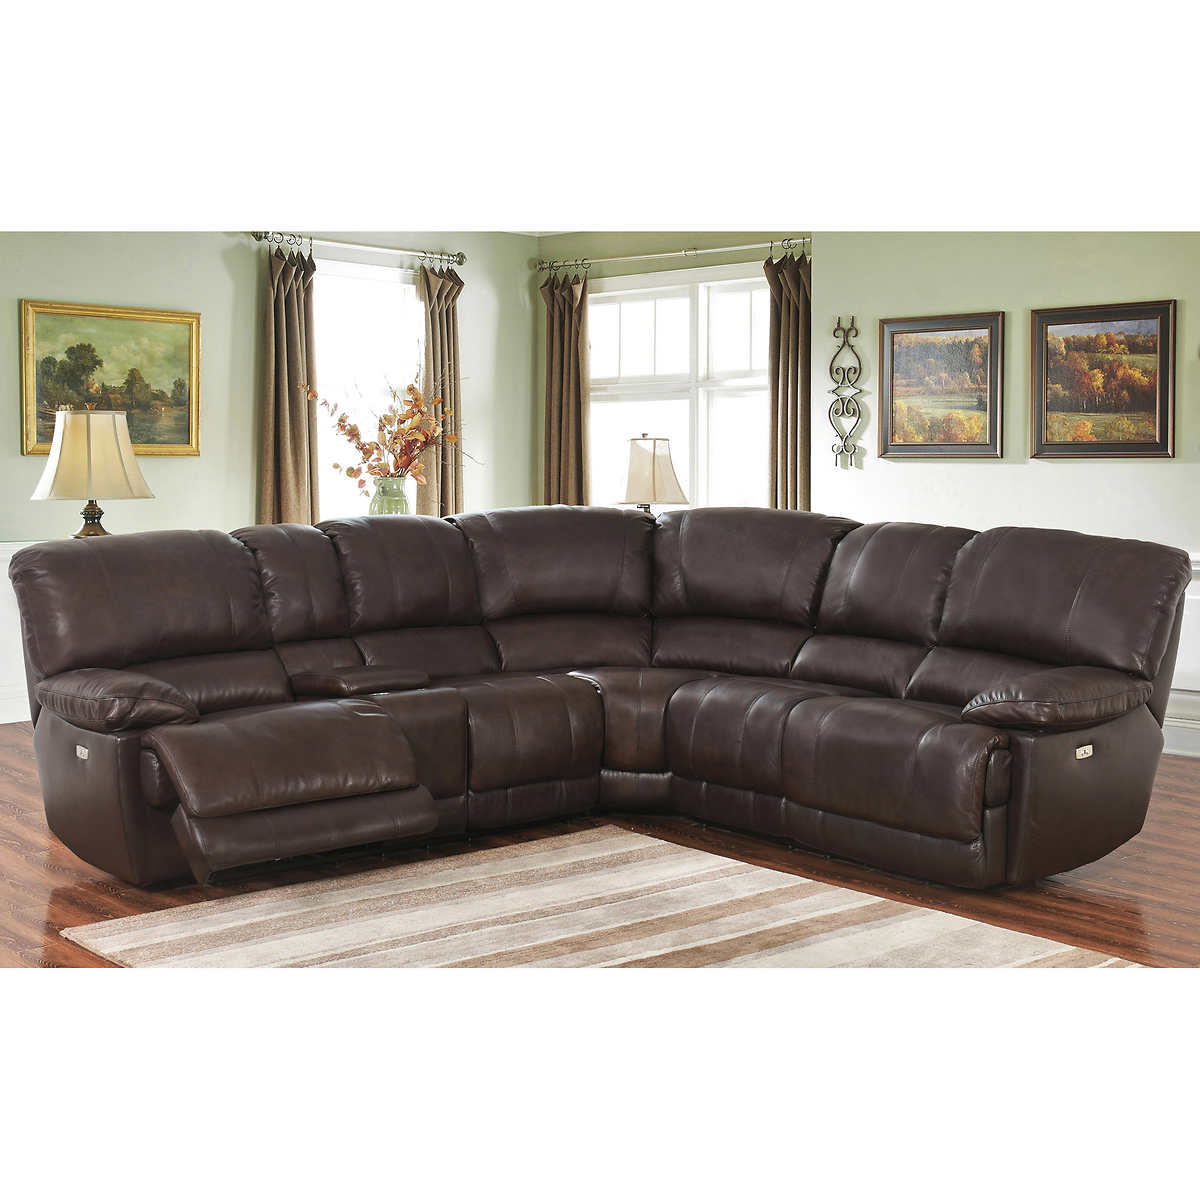 leather sofas & sectionals | costco